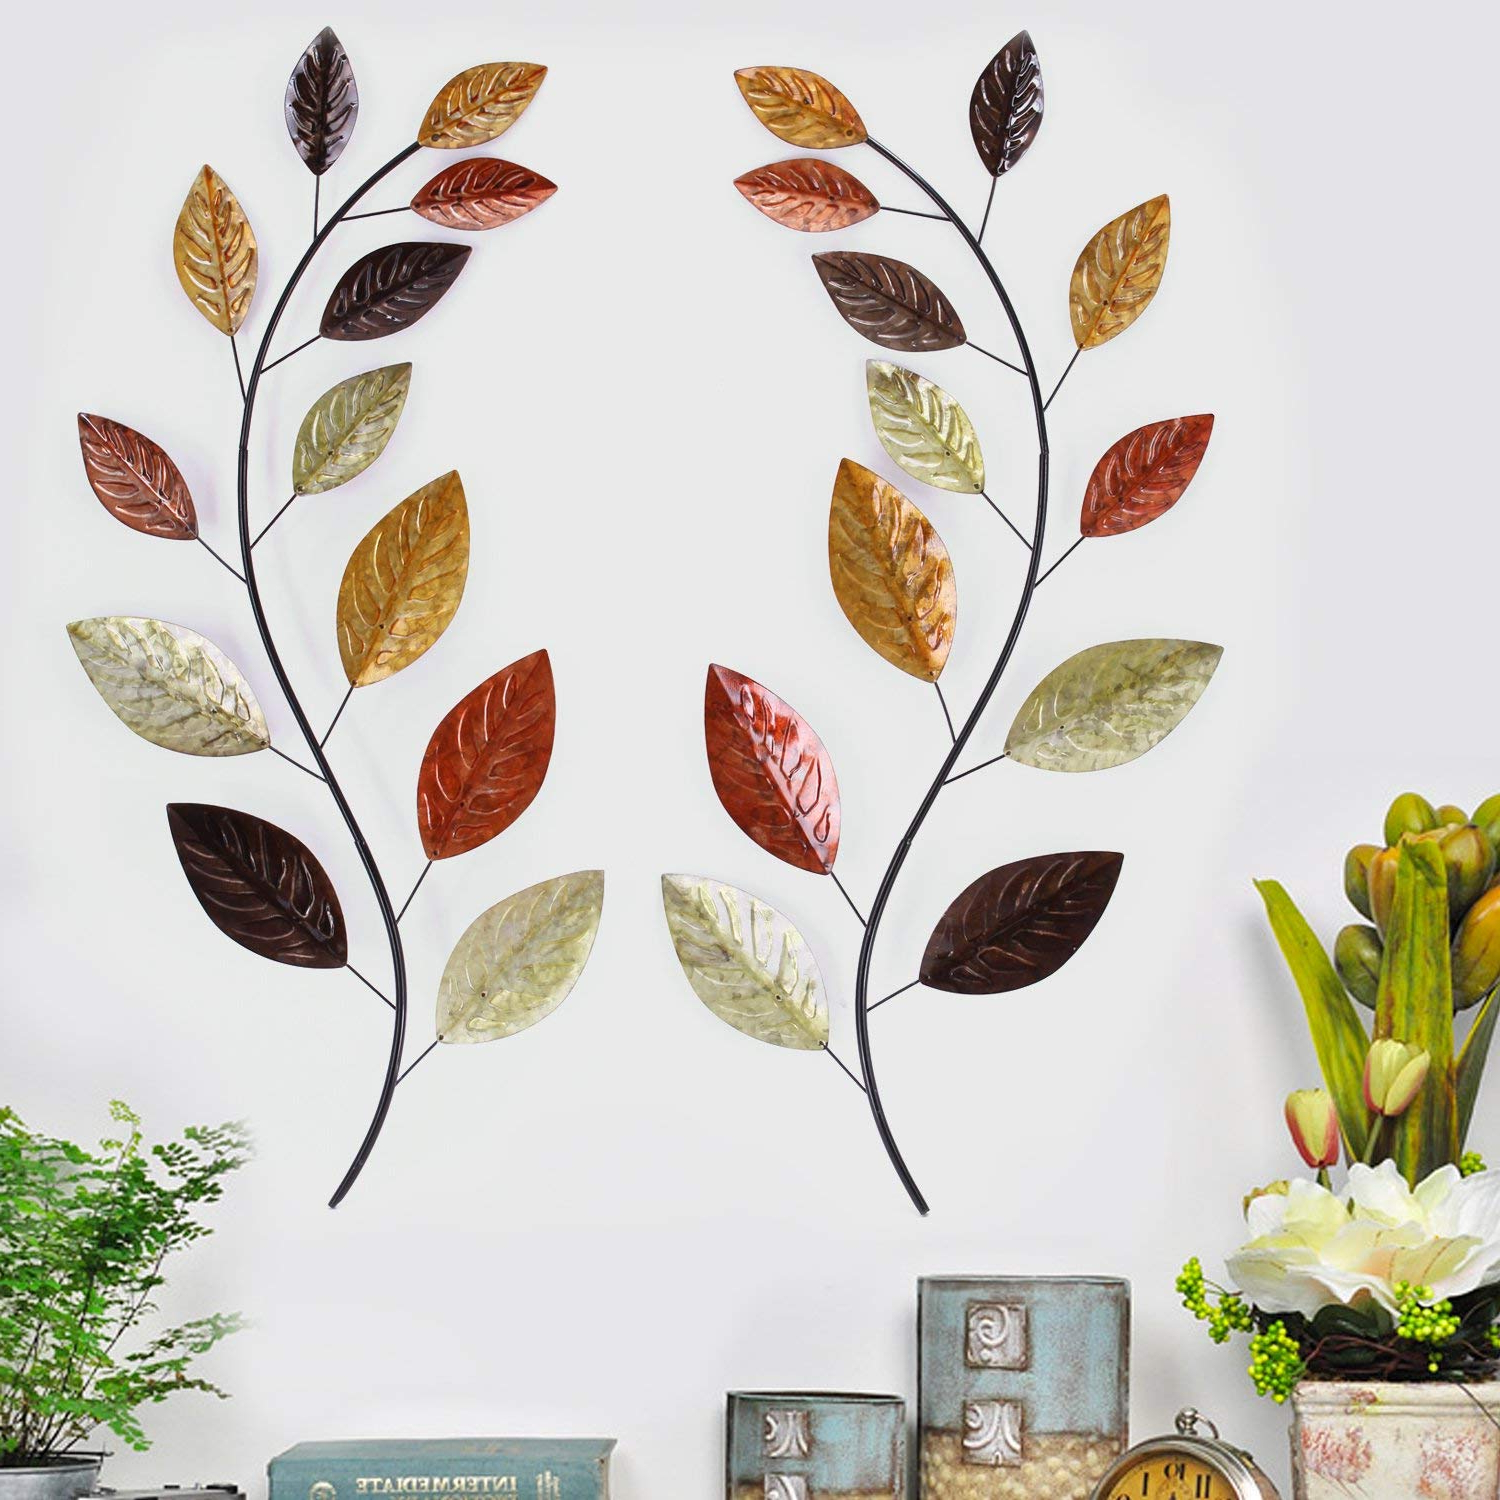 Most Current Amazon: Asense Tree Leaf Metal Wall Art Sculptures Home Decor Throughout Leaves Metal Sculpture Wall Decor (View 8 of 20)